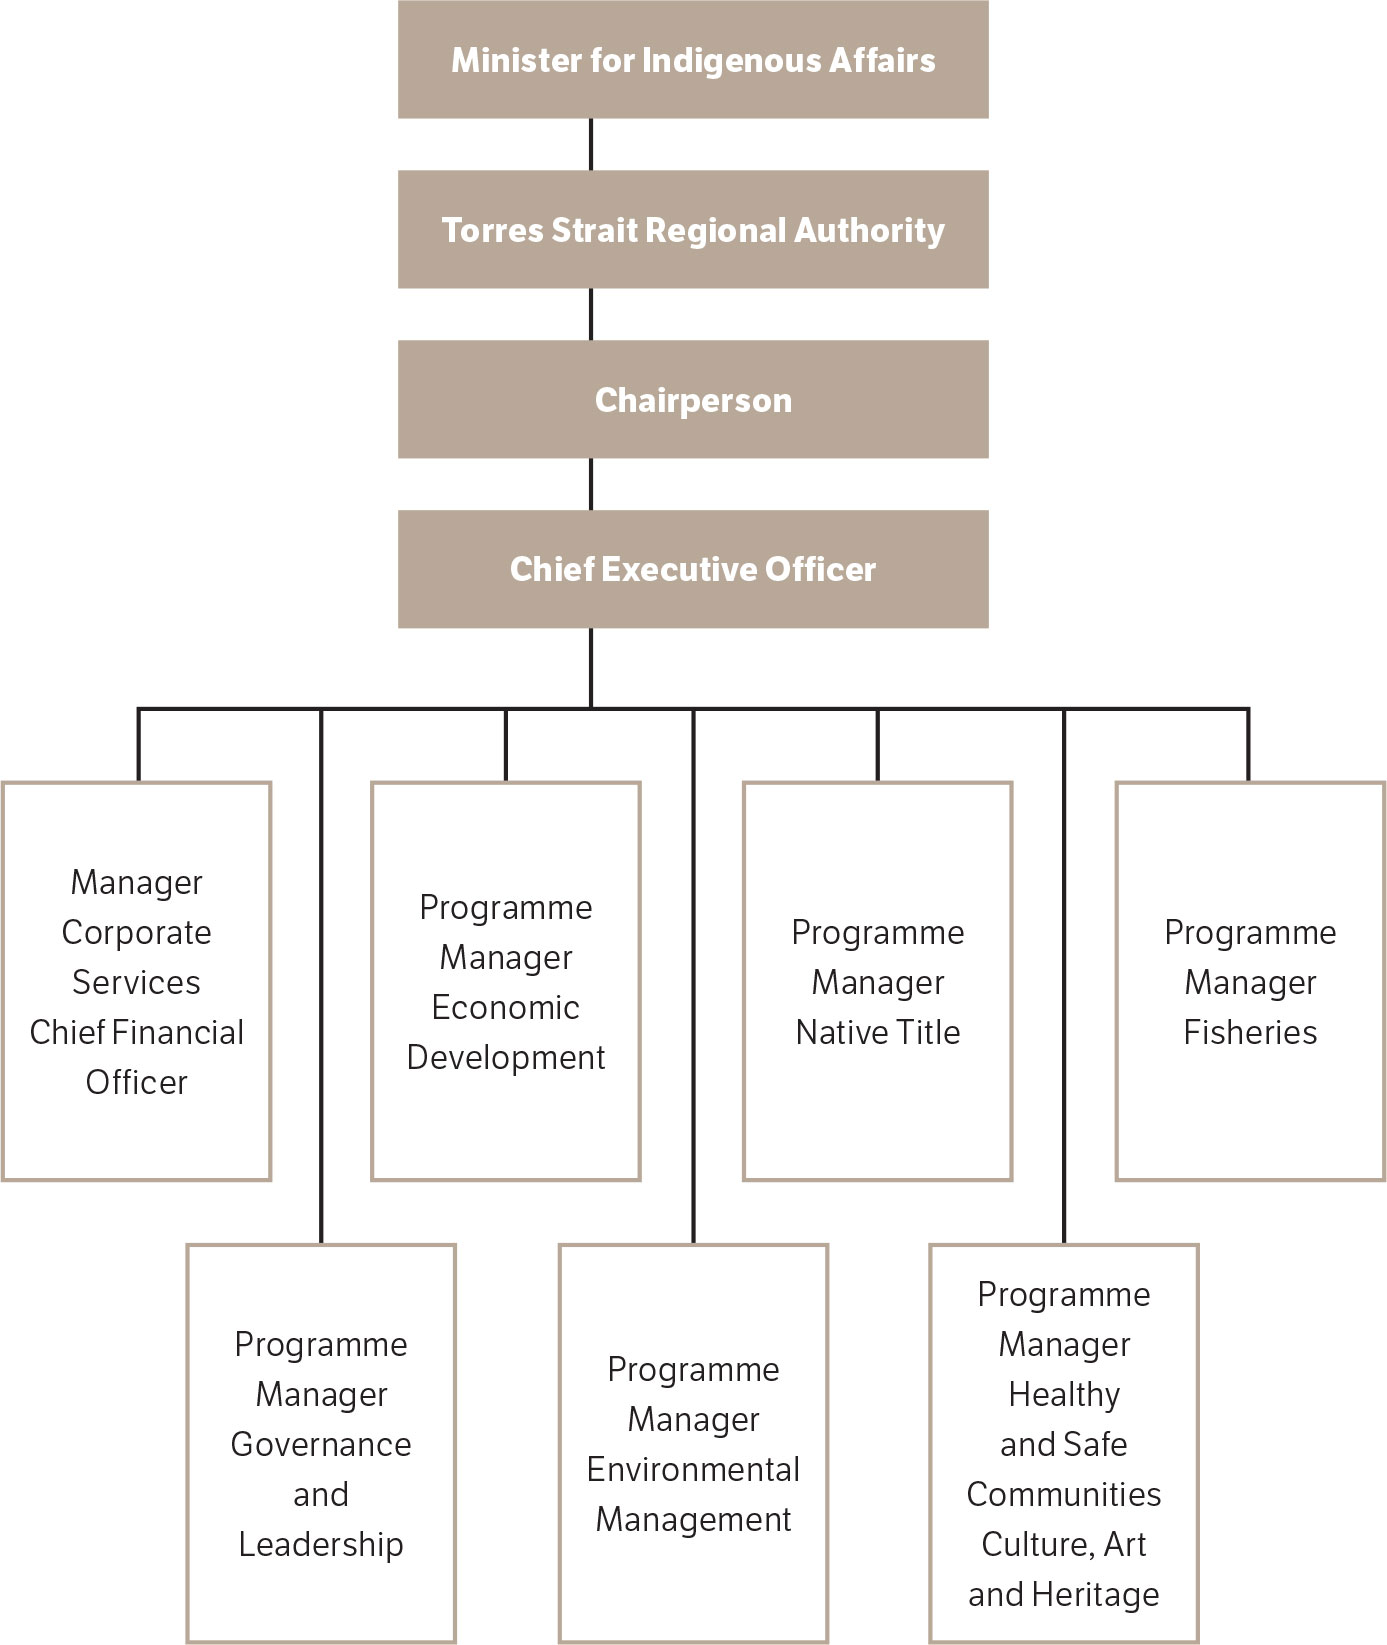 Figure 6-1: Torres Strait Regional Authority structure